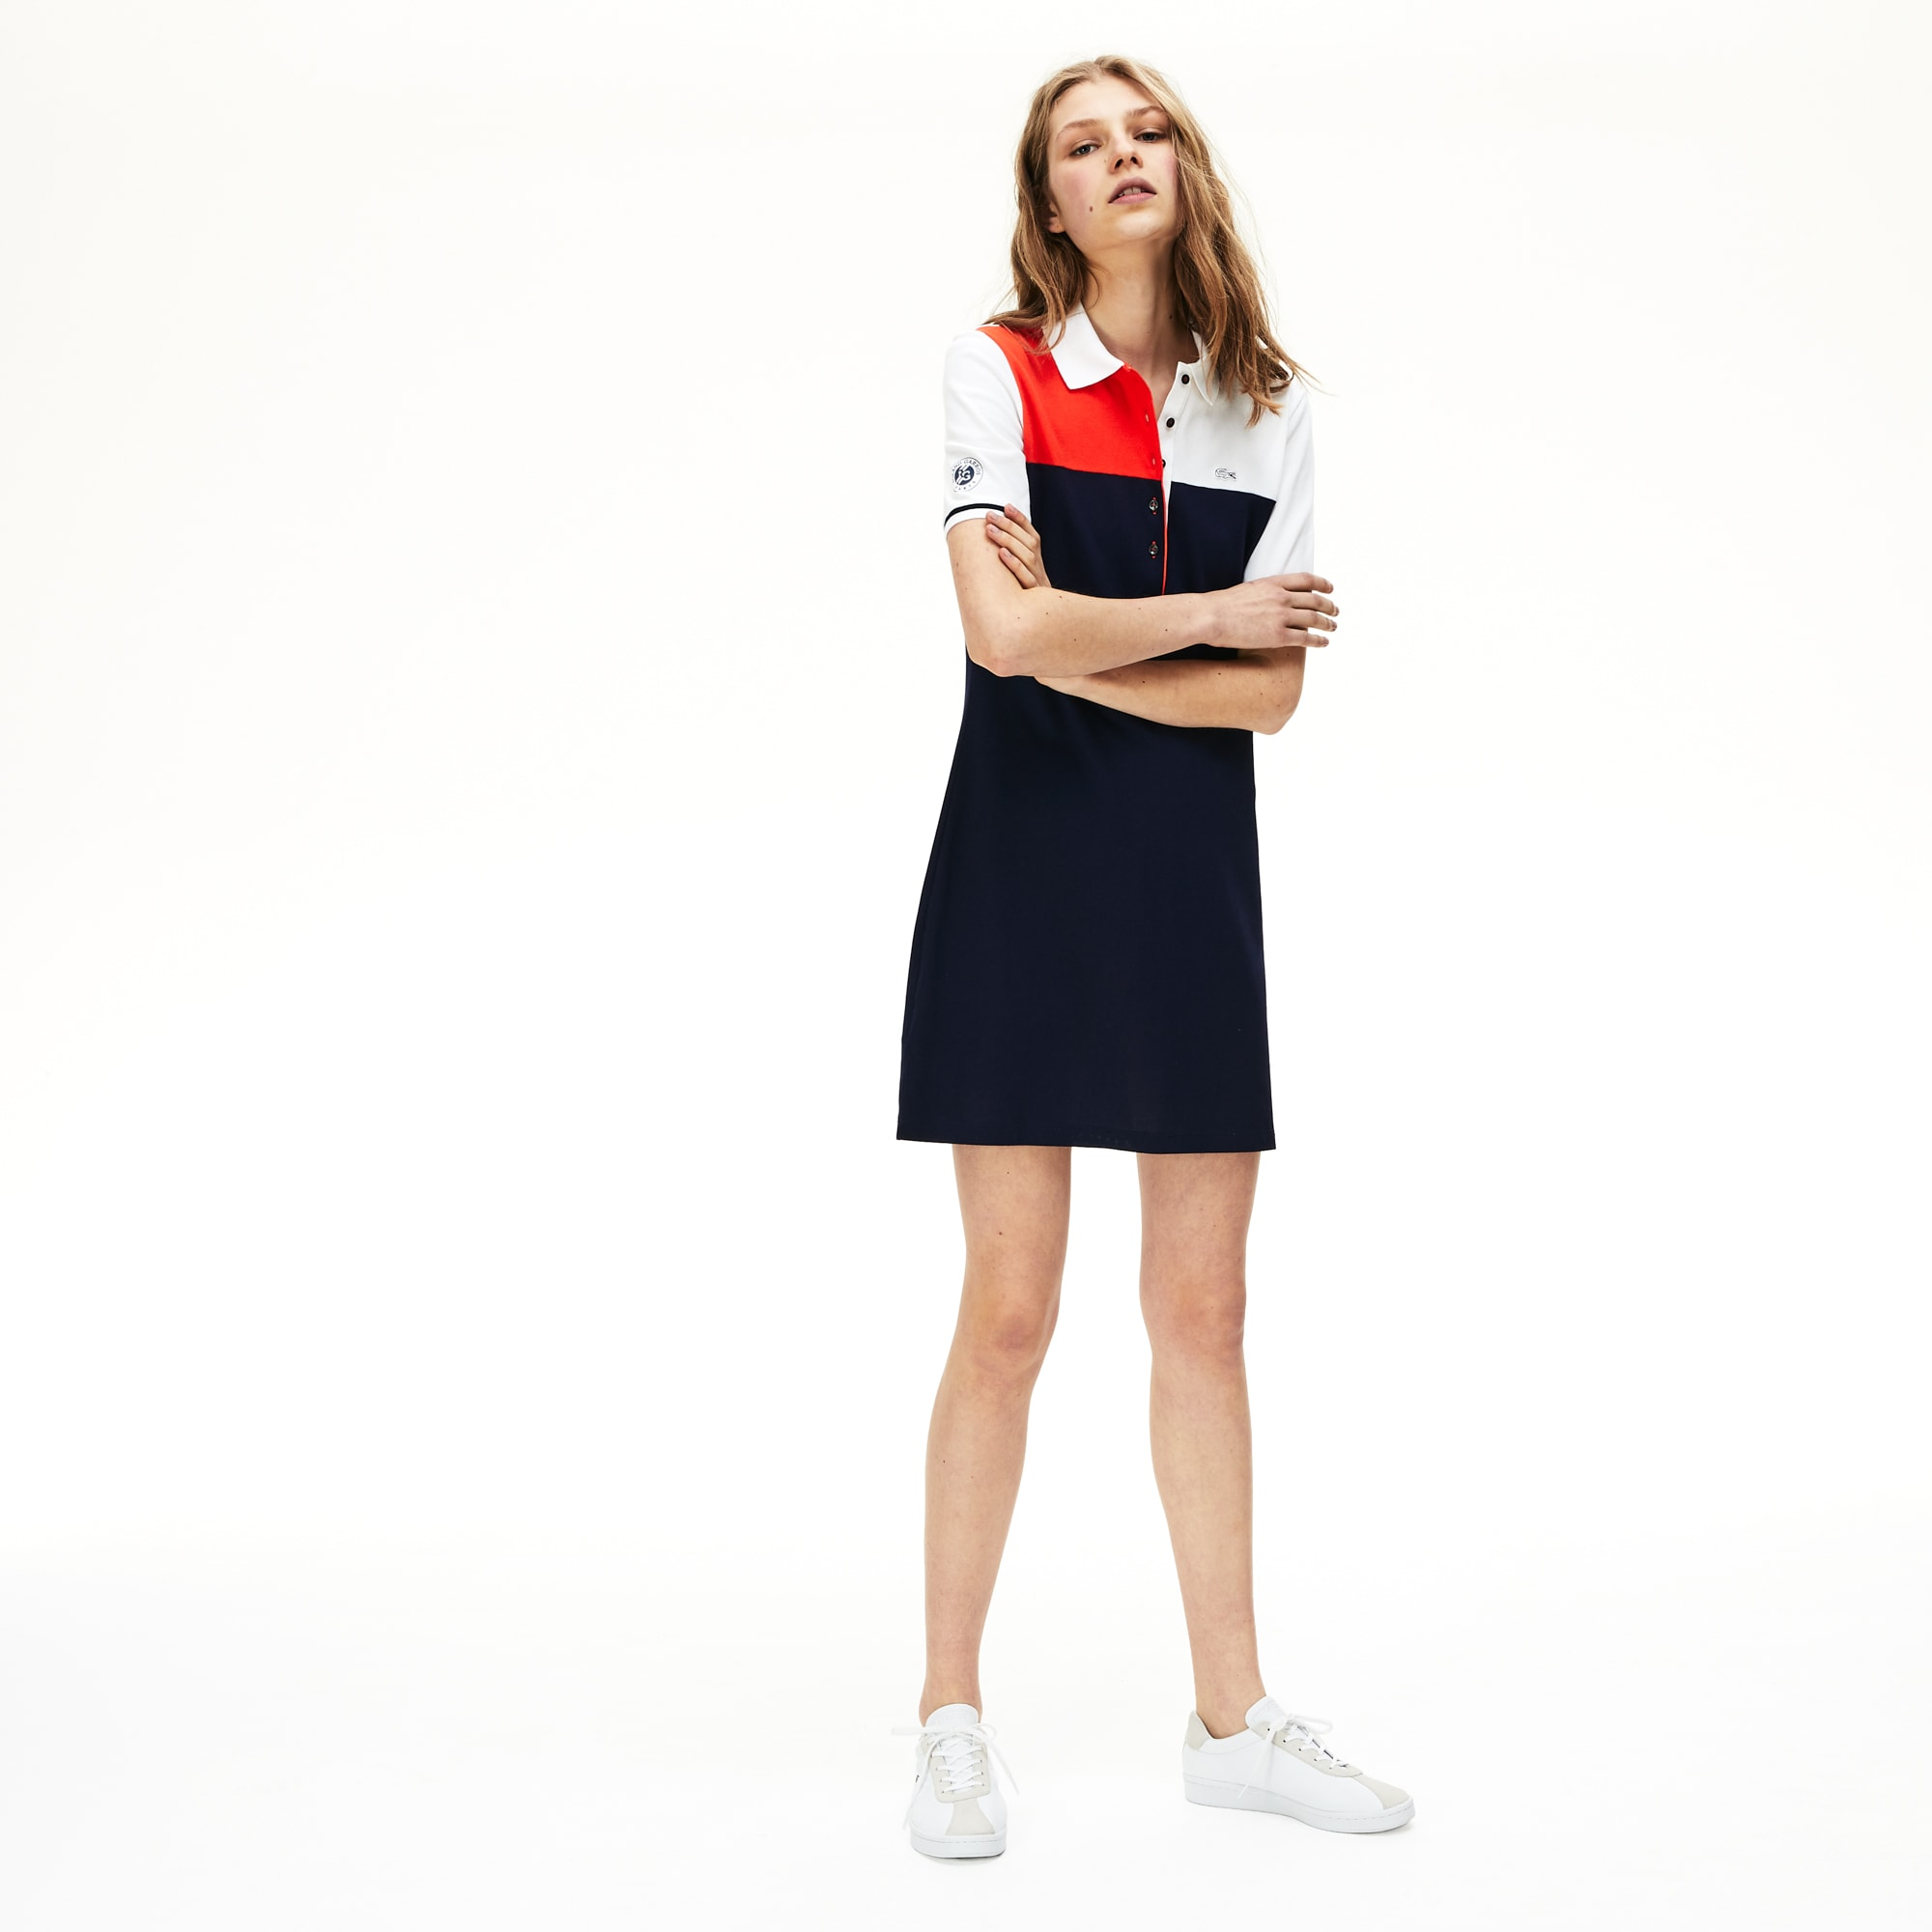 a212ae8c23 Robes & Jupes | Vêtements Femme | LACOSTE